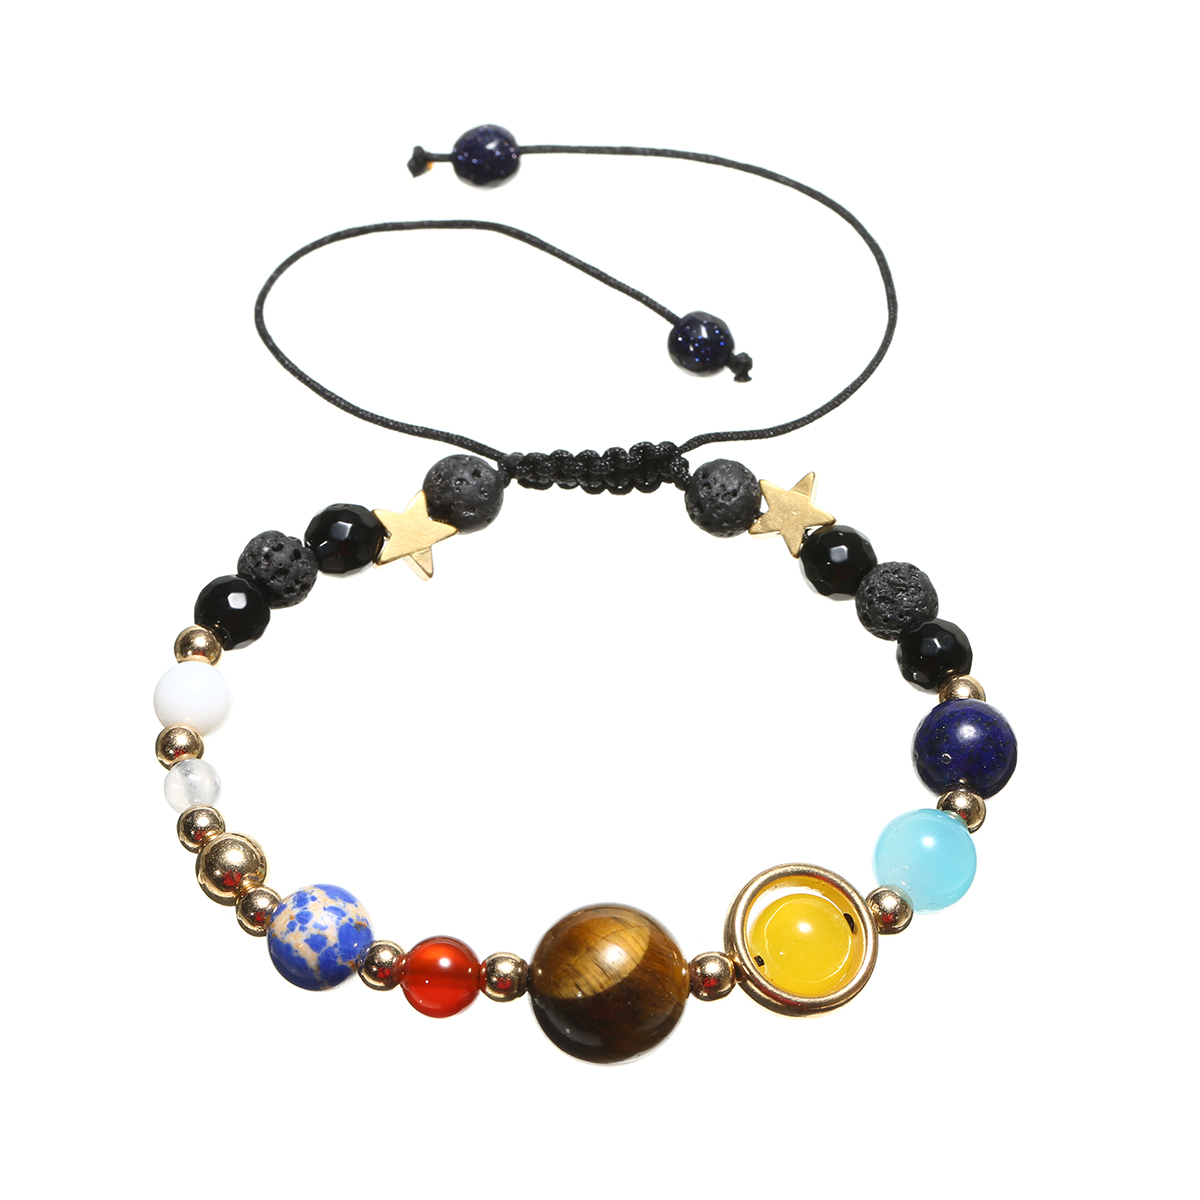 Charms Unisex Adjustable Planets Solar System Star Men Women Bracelet Universe Galaxy Beaded Bangles Unique Jewelry Chic Gifts